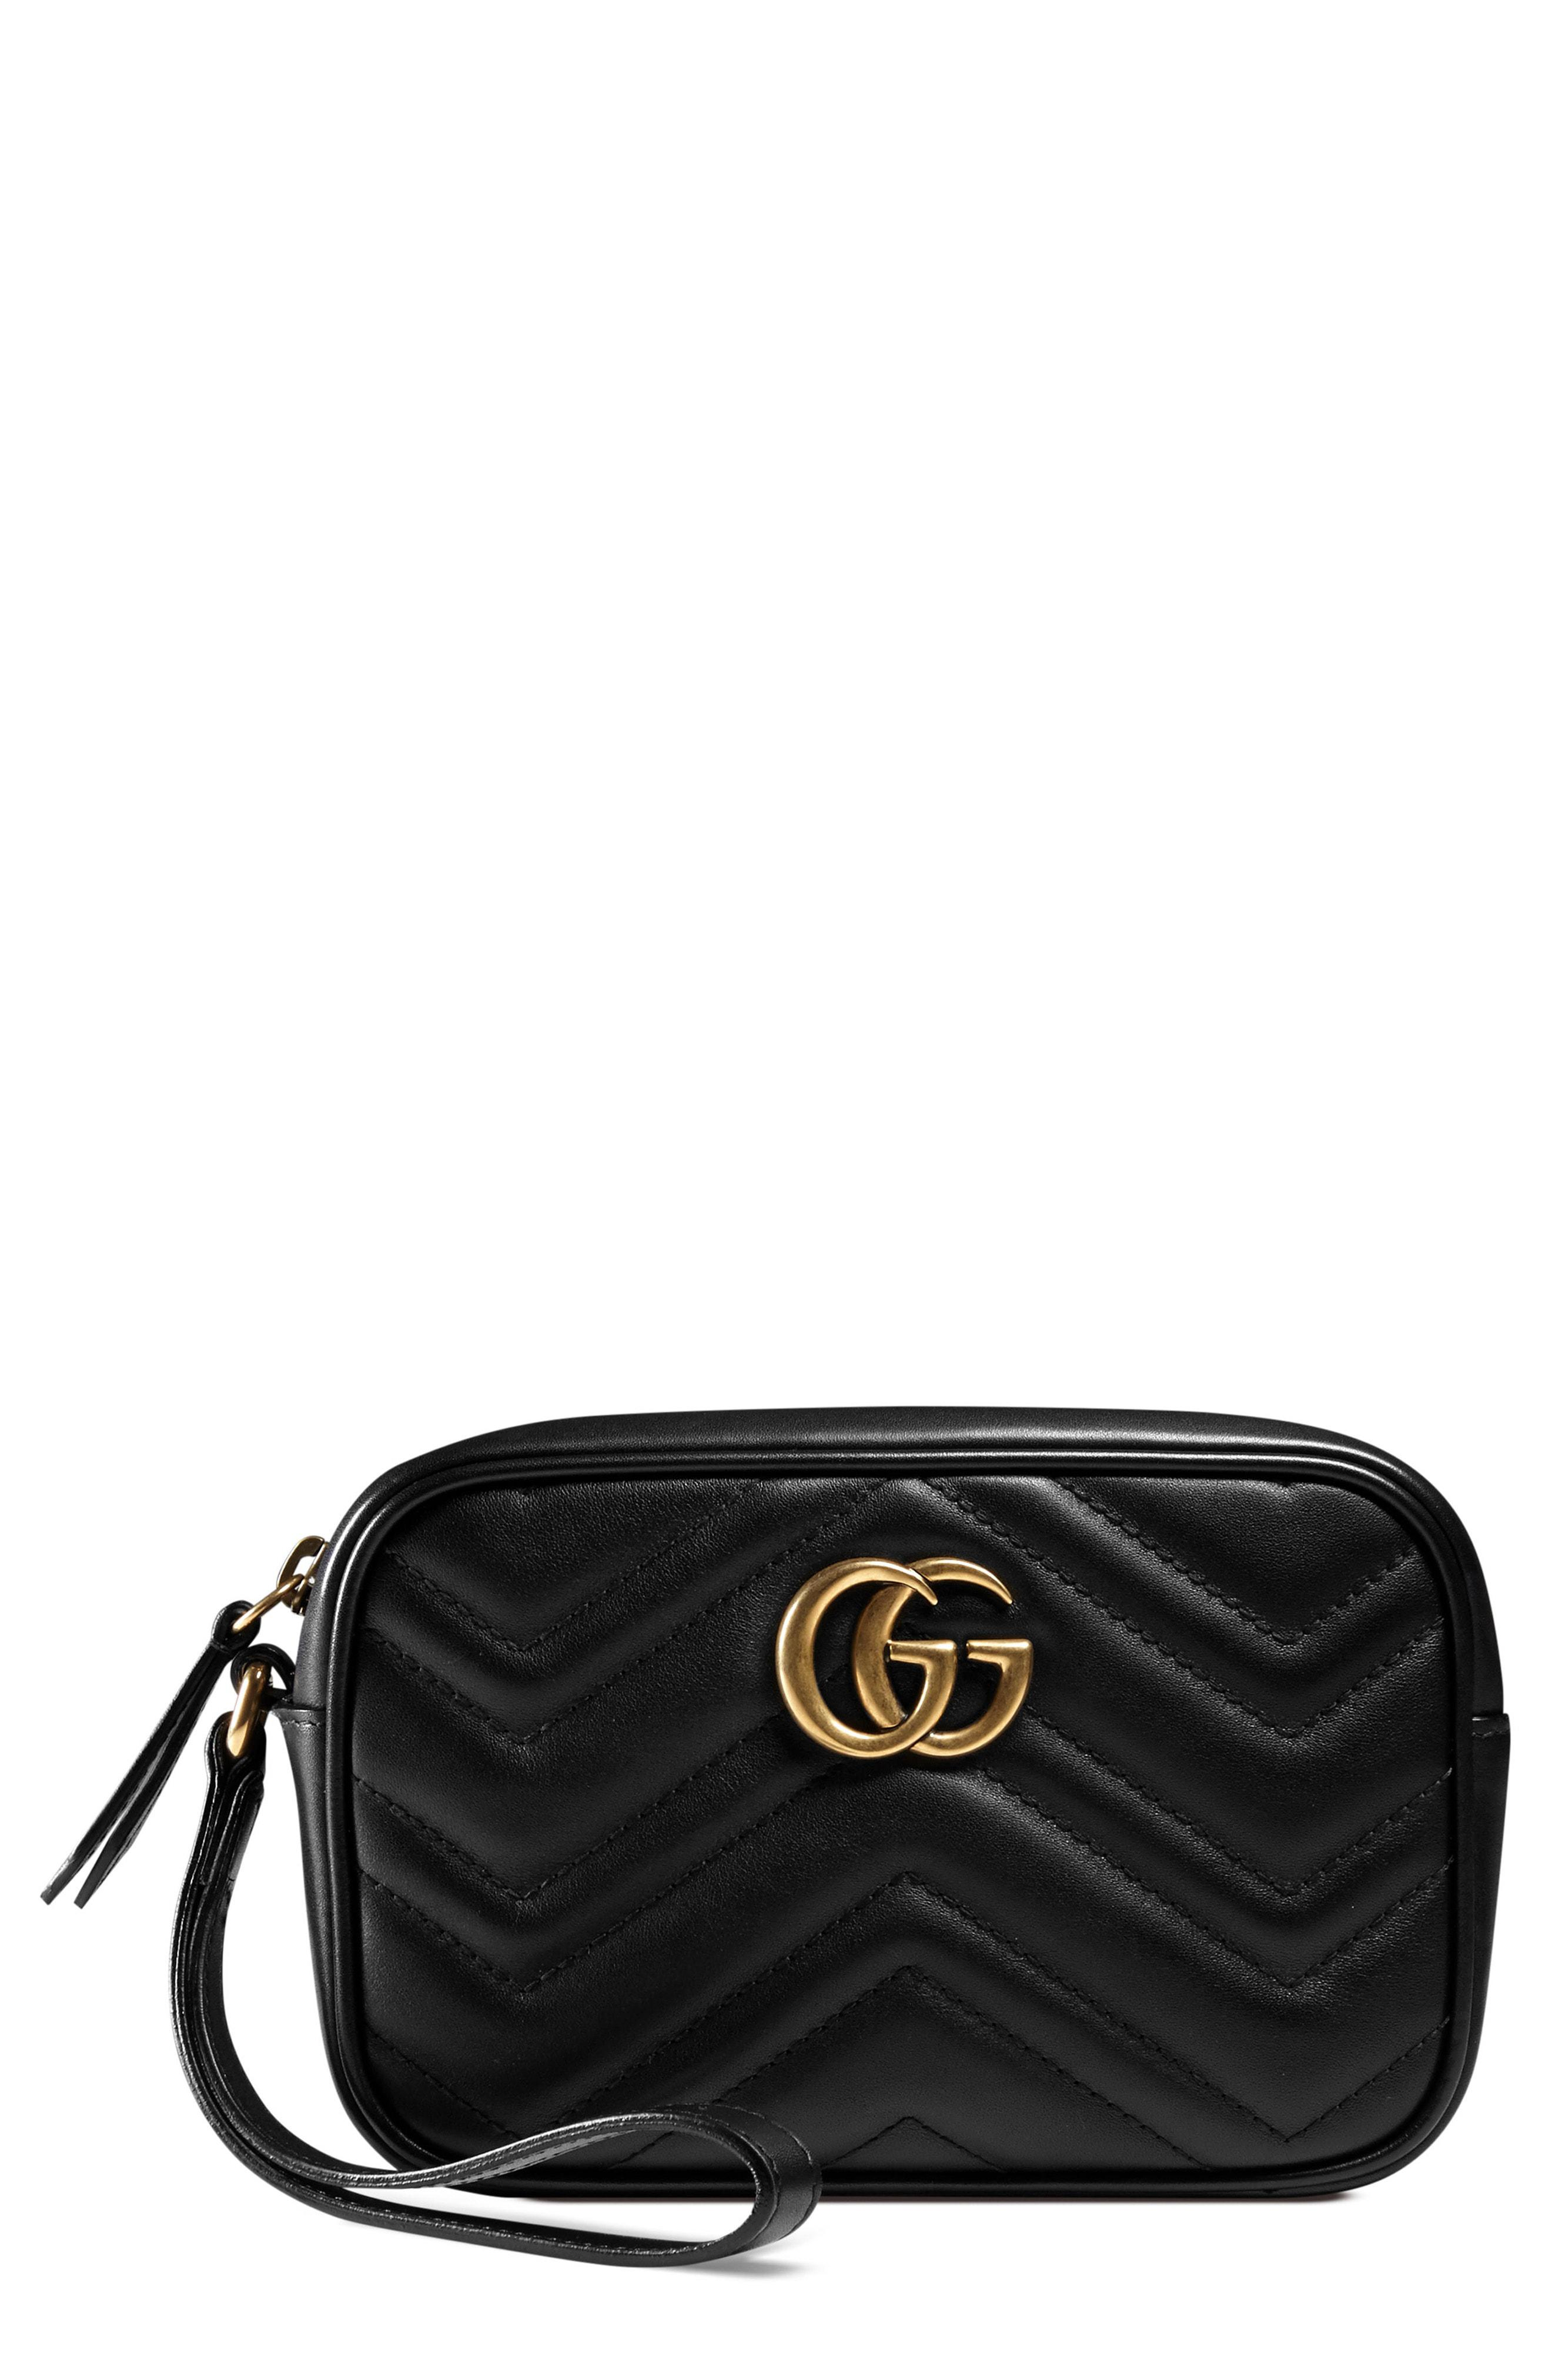 4ae4ba0cf5bd Gucci Gg Marmont Matelasse Imitation Pearl Leather Shoulder Bag - in ...